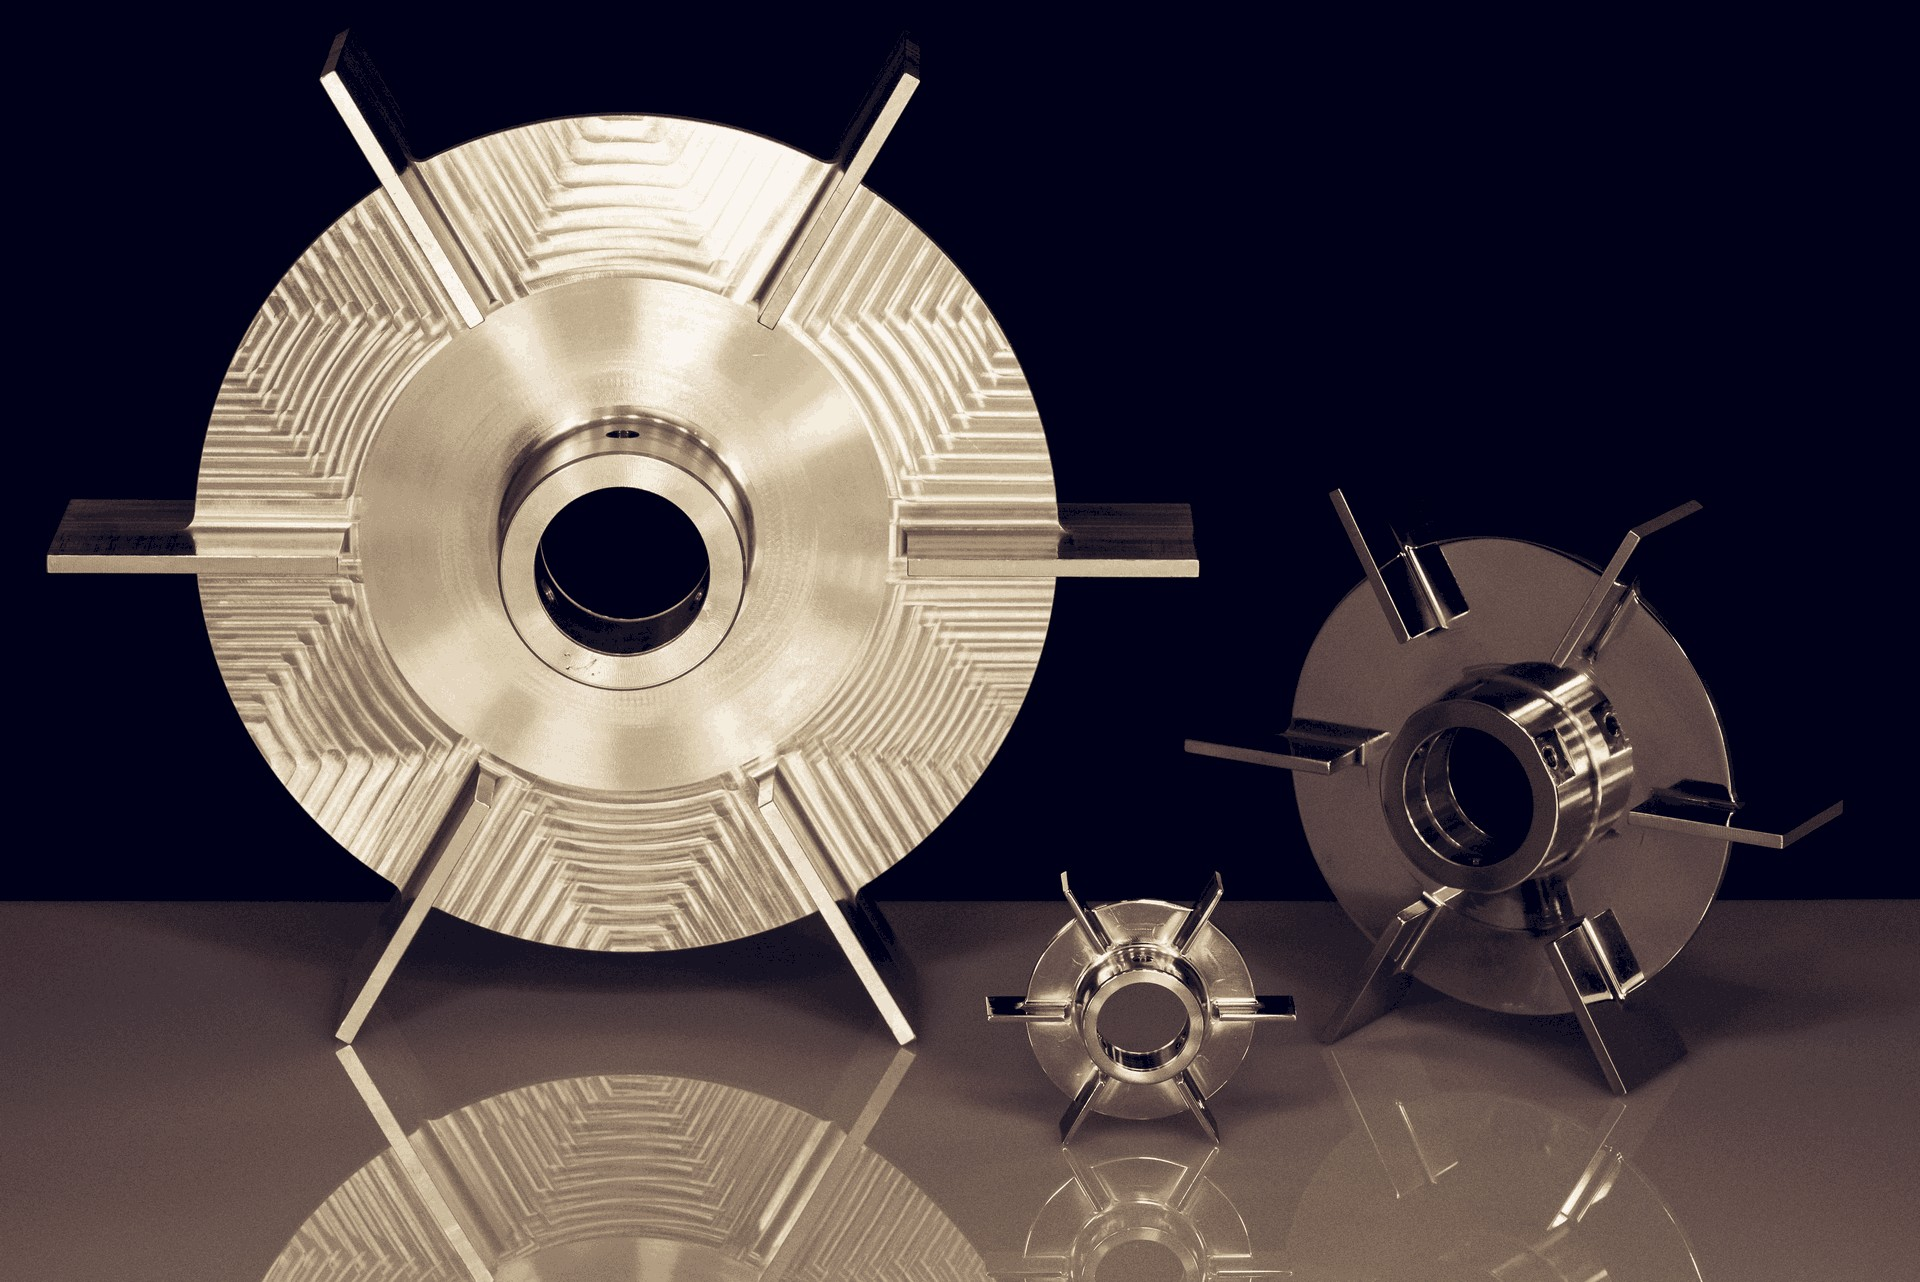 Impellers in aisi 316 stainless steel